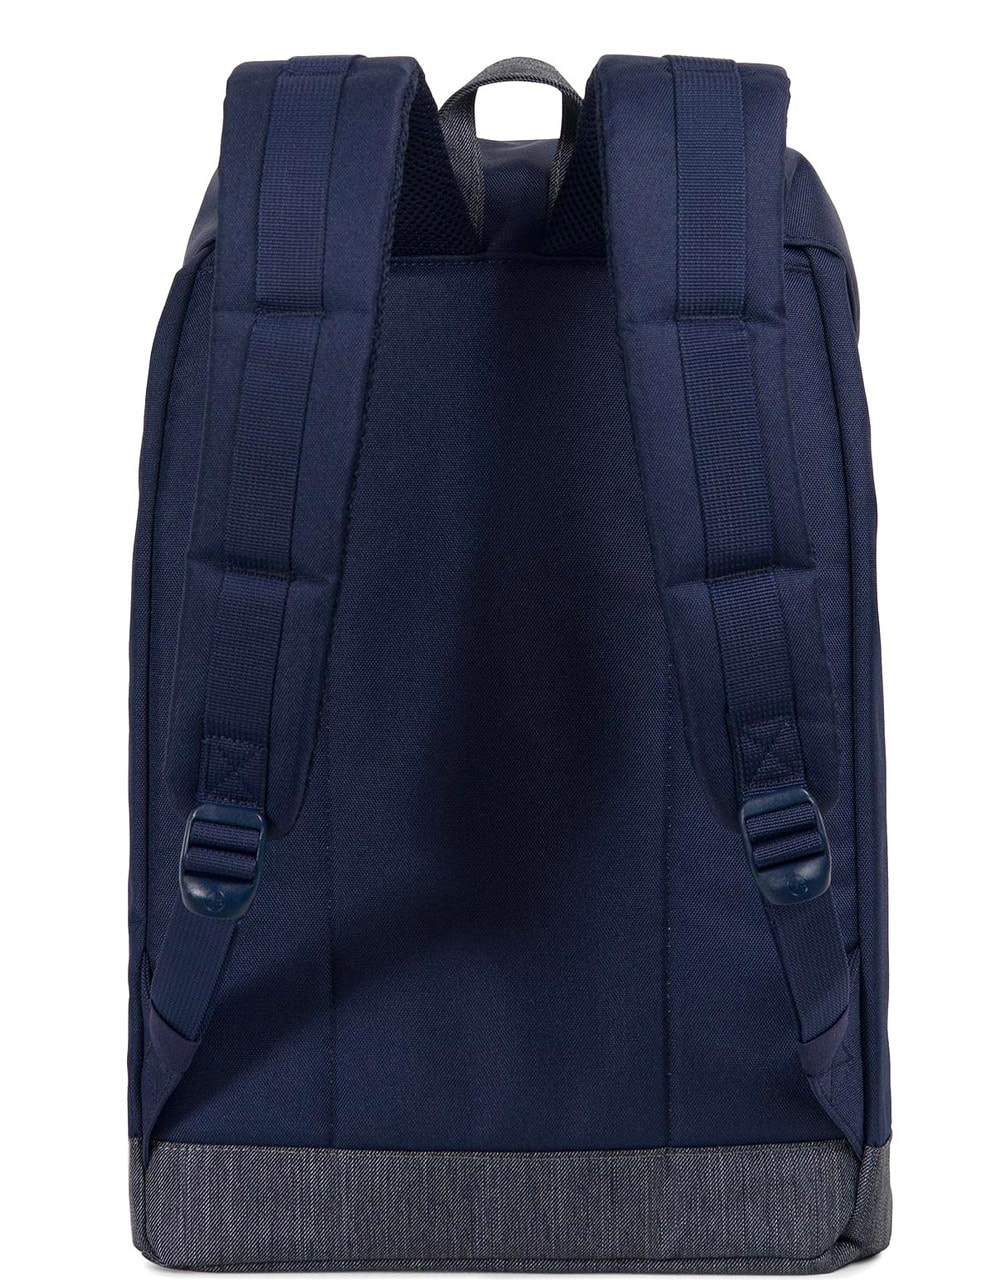 Рюкзак HERSCHEL RETREAT Peacoat/Dark Denim 19.5l